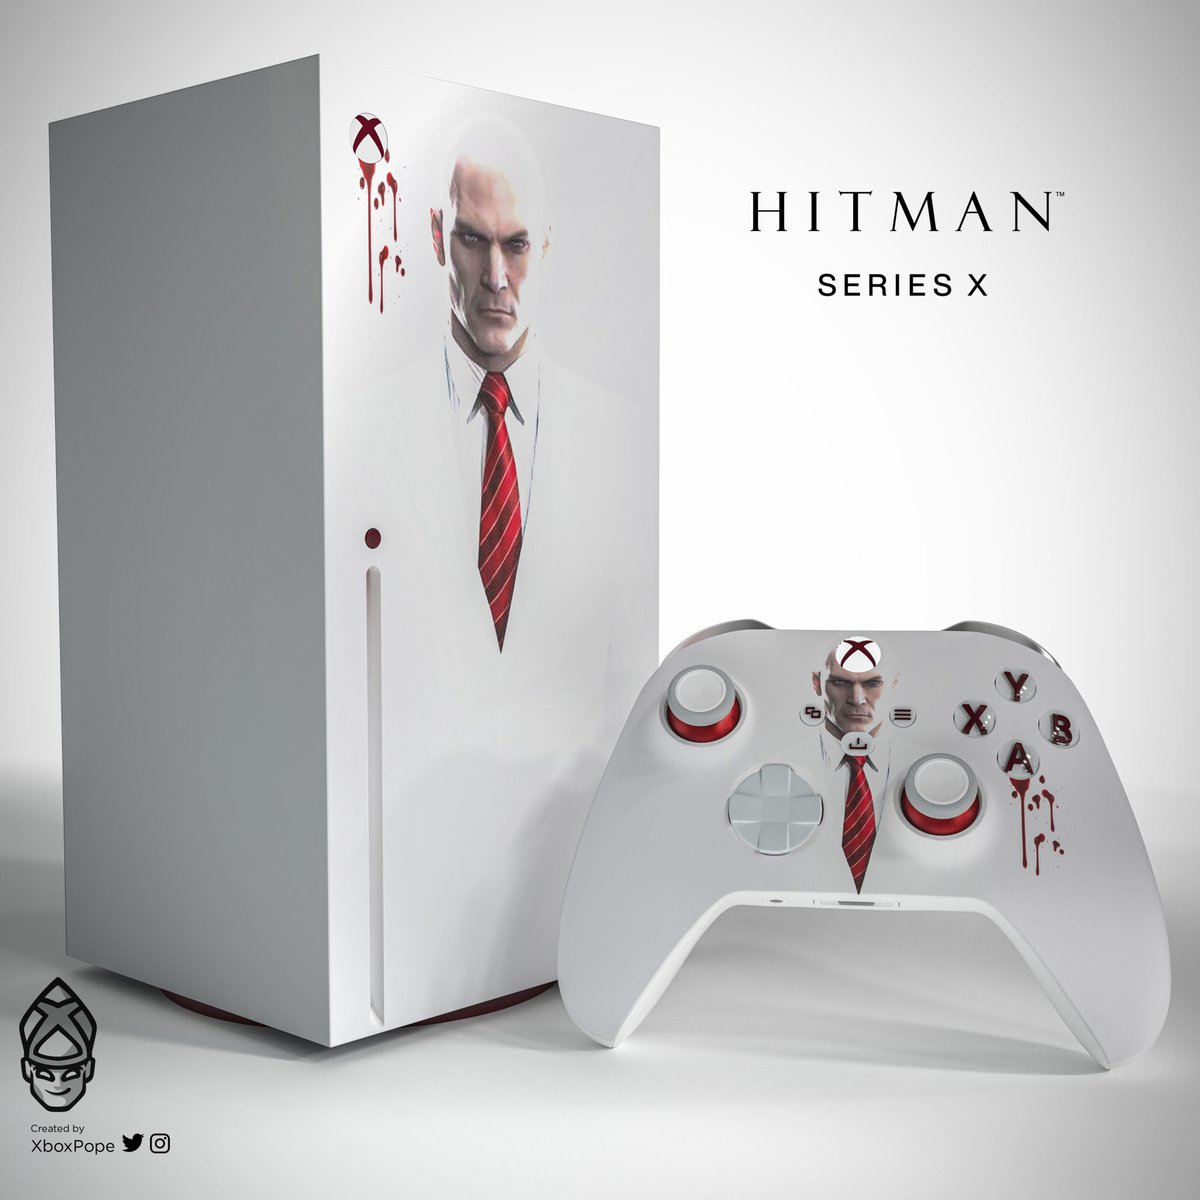 Pope On Twitter Ok Its Xbox Fan Art Friday I Had Lots Of Request For Hitman Hitman Iointeractive Well Done On Everything You Have Done Xboxseriesx Https T Co Sm0t7ouynz